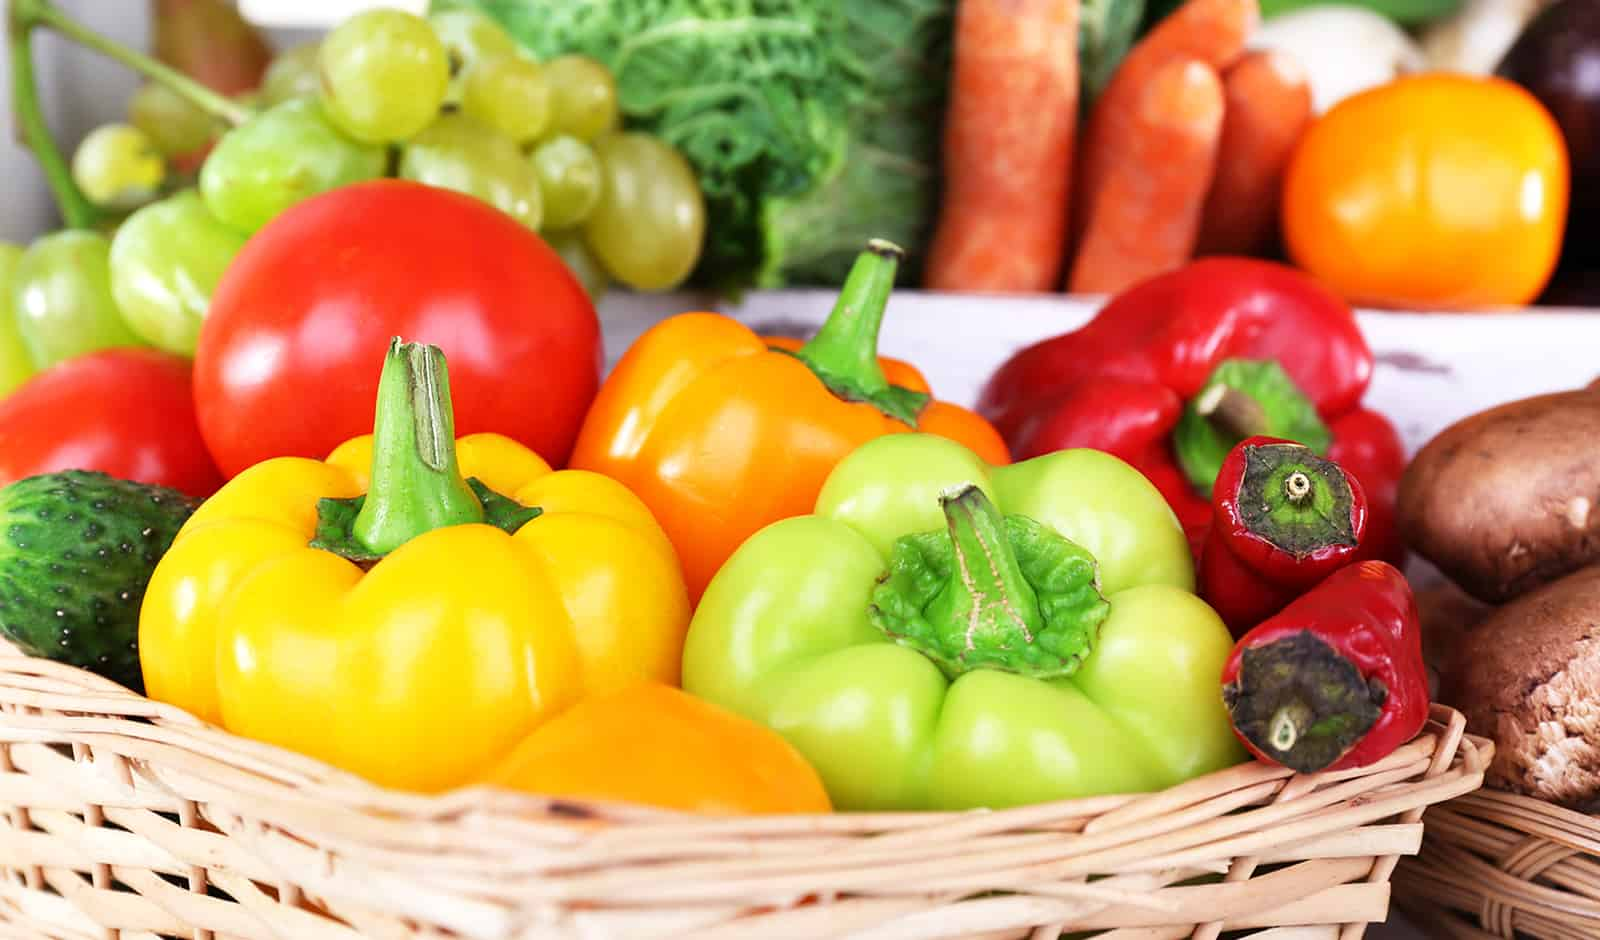 how-to-store-vegetables-to-keep-them-fresh-main-image